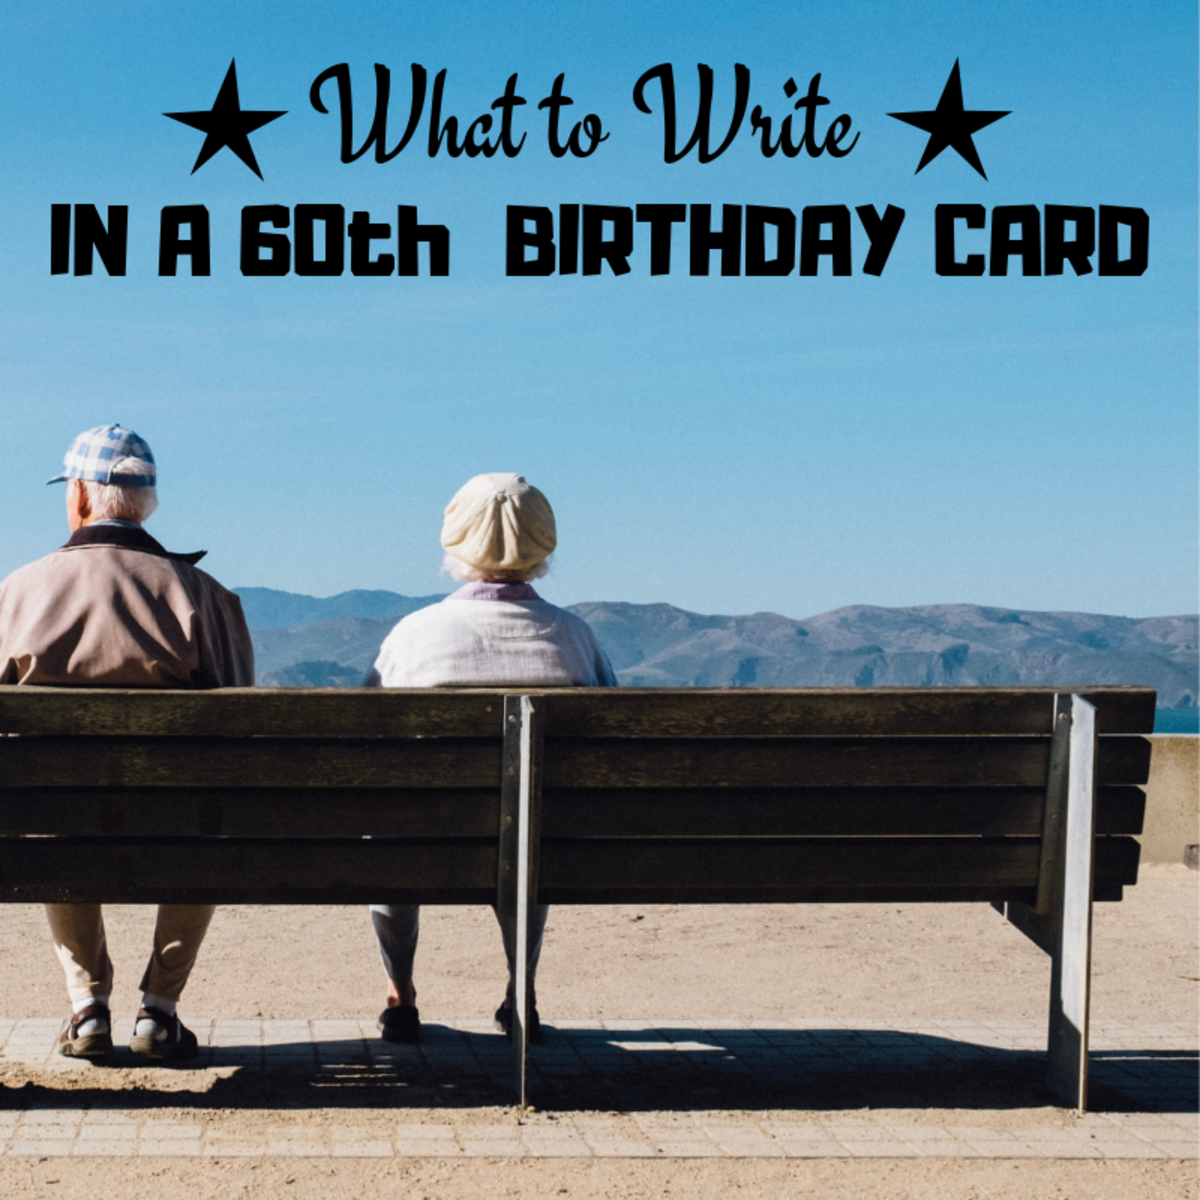 60 is a big milestone, so it deserves a great birthday card! Use these example messages to get some ideas.